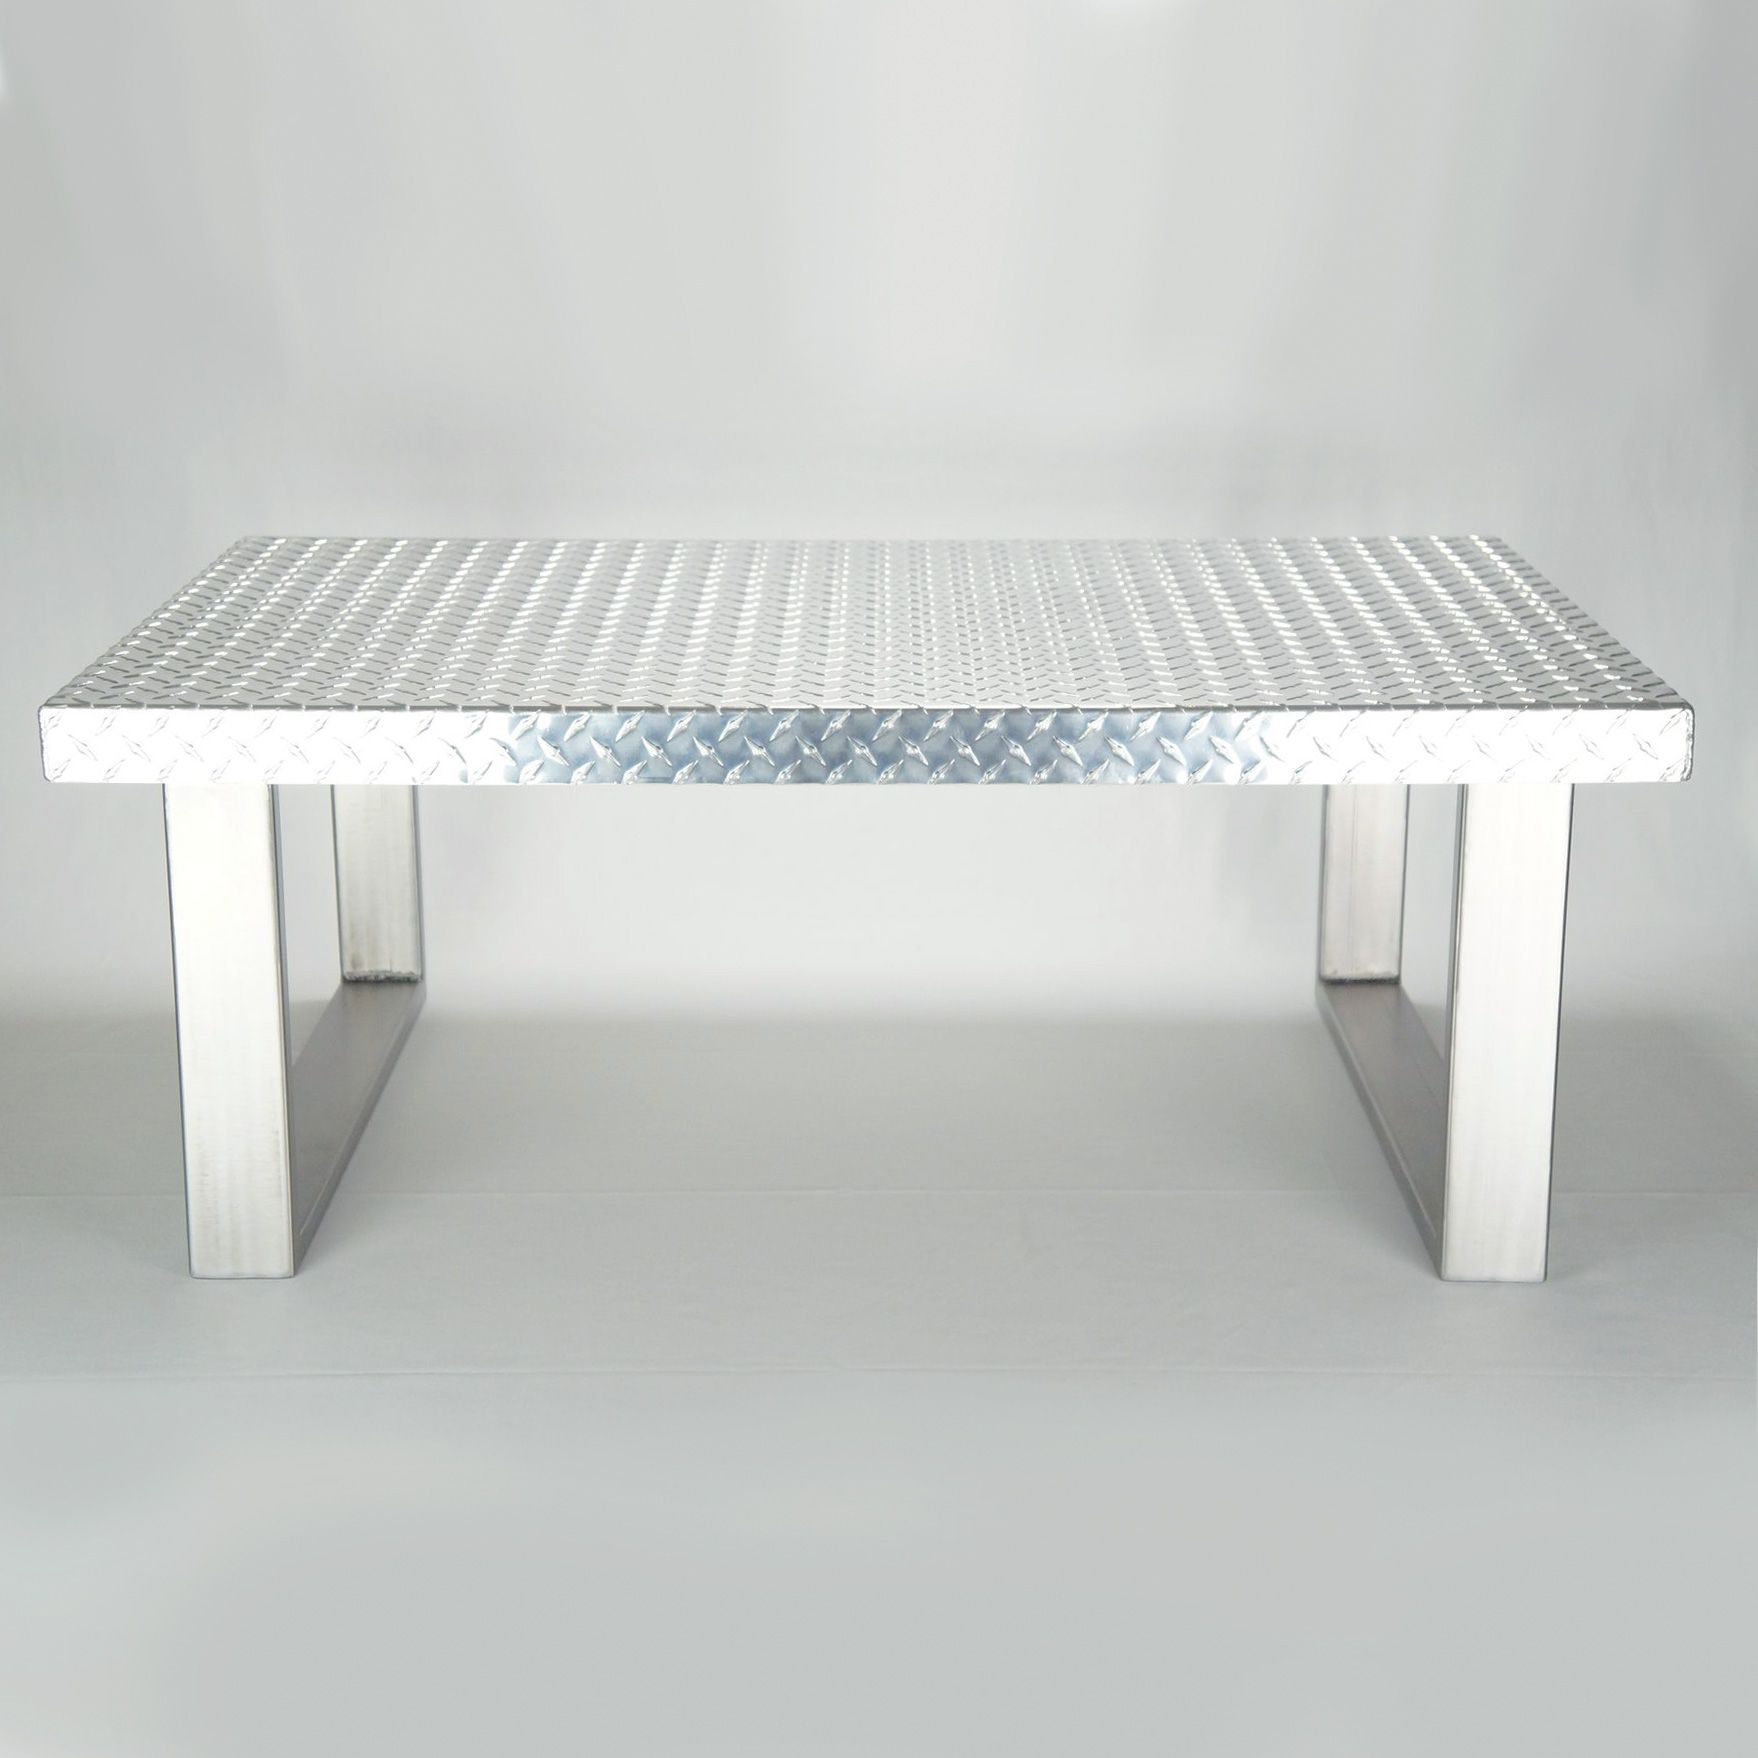 Industrial Unique Metal Designer Coffee Table: Hand Made Industrial Diamond Plate Metal Coffee Table By